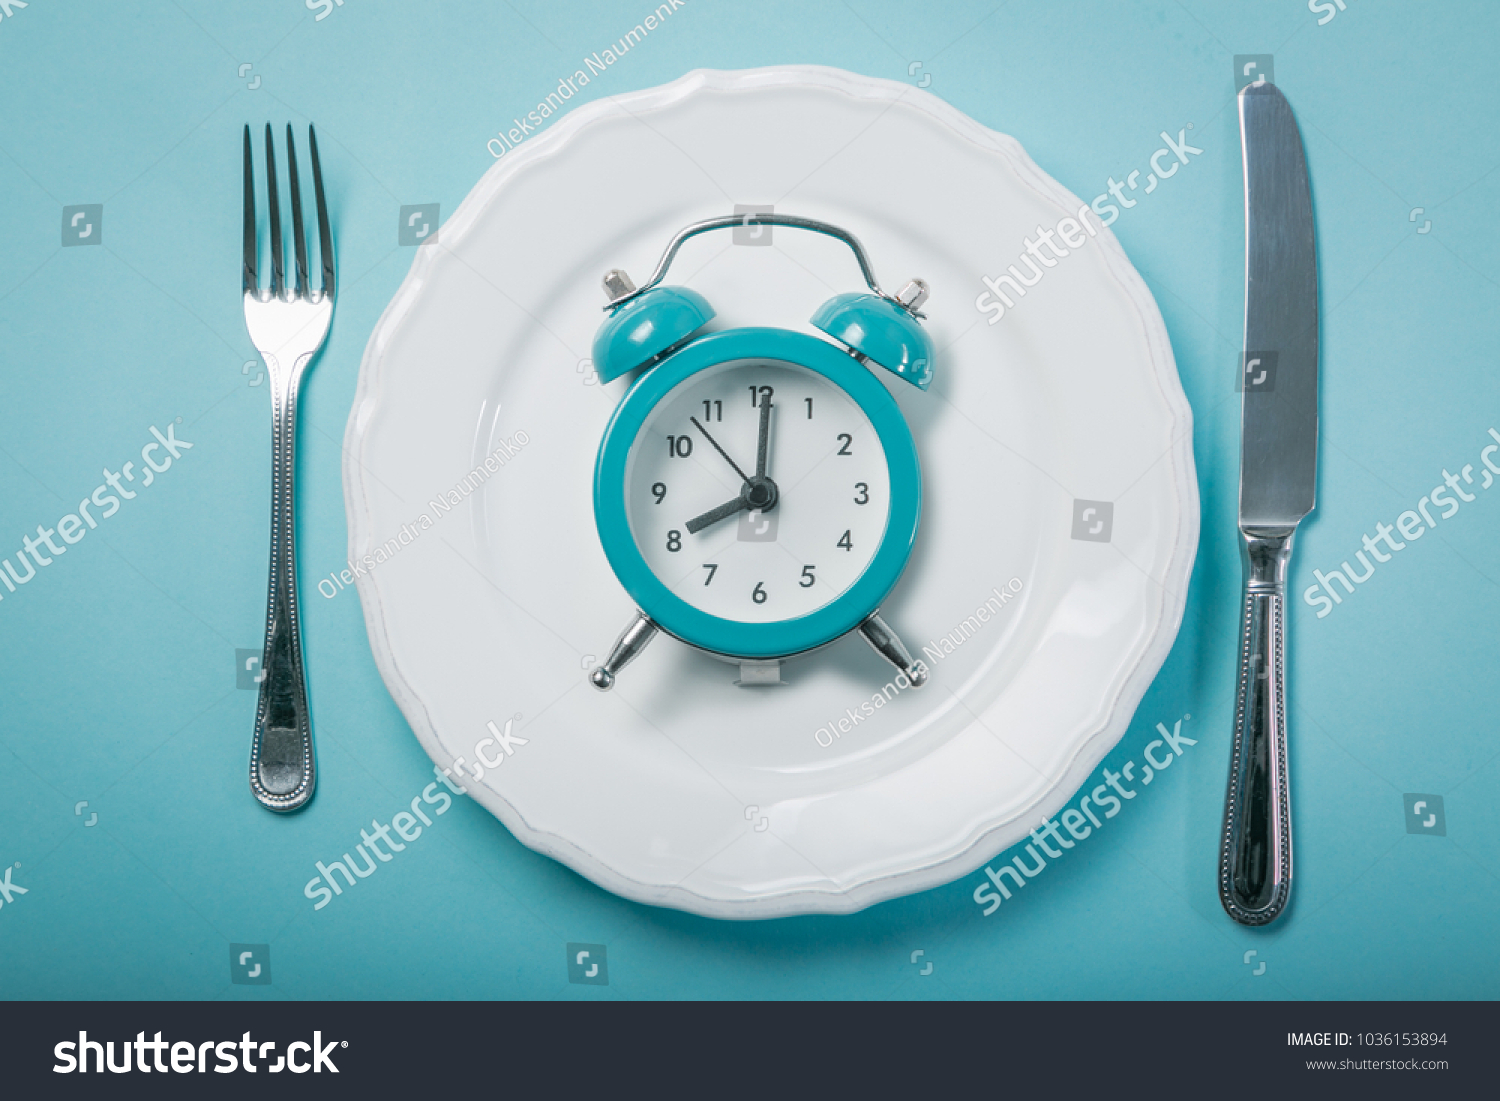 Intermittent fastin concept - empty plate on blue background #1036153894